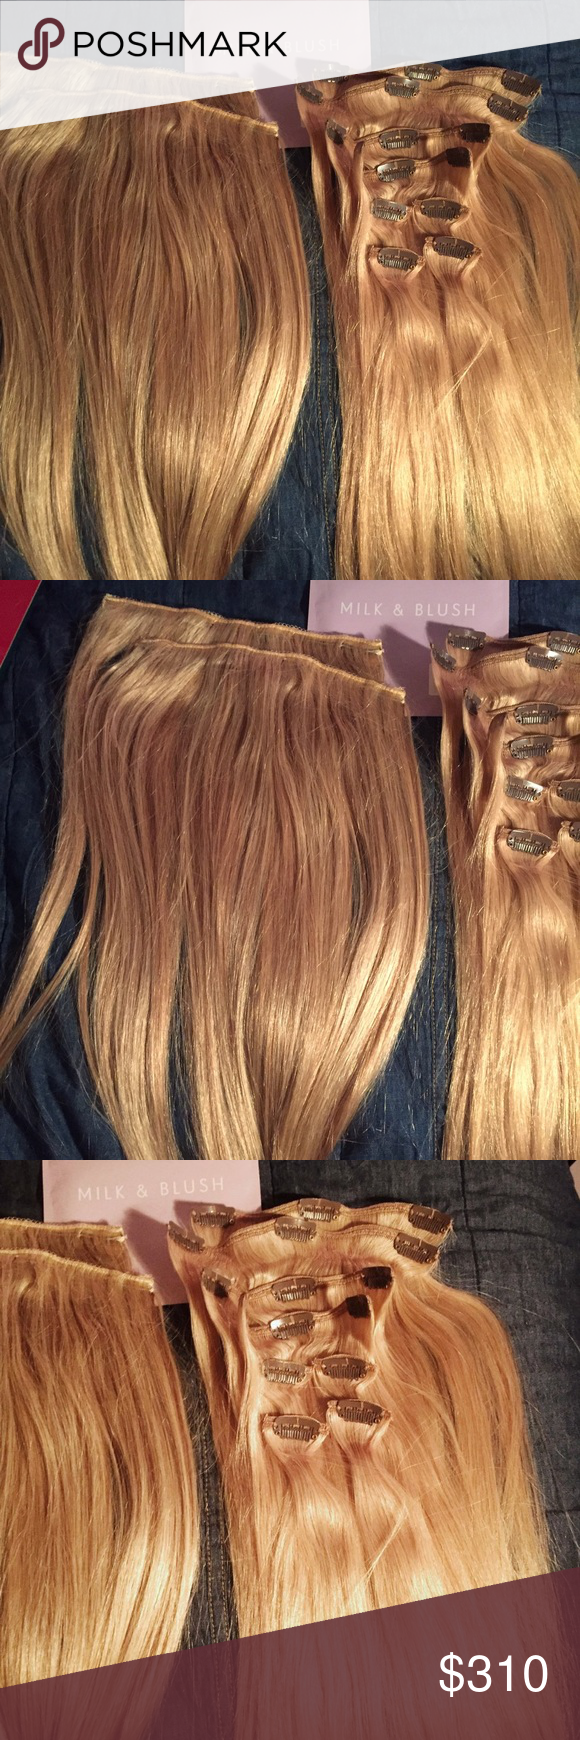 Dirty Looks Full Custom Set Of Hair Extensions New Never Used In